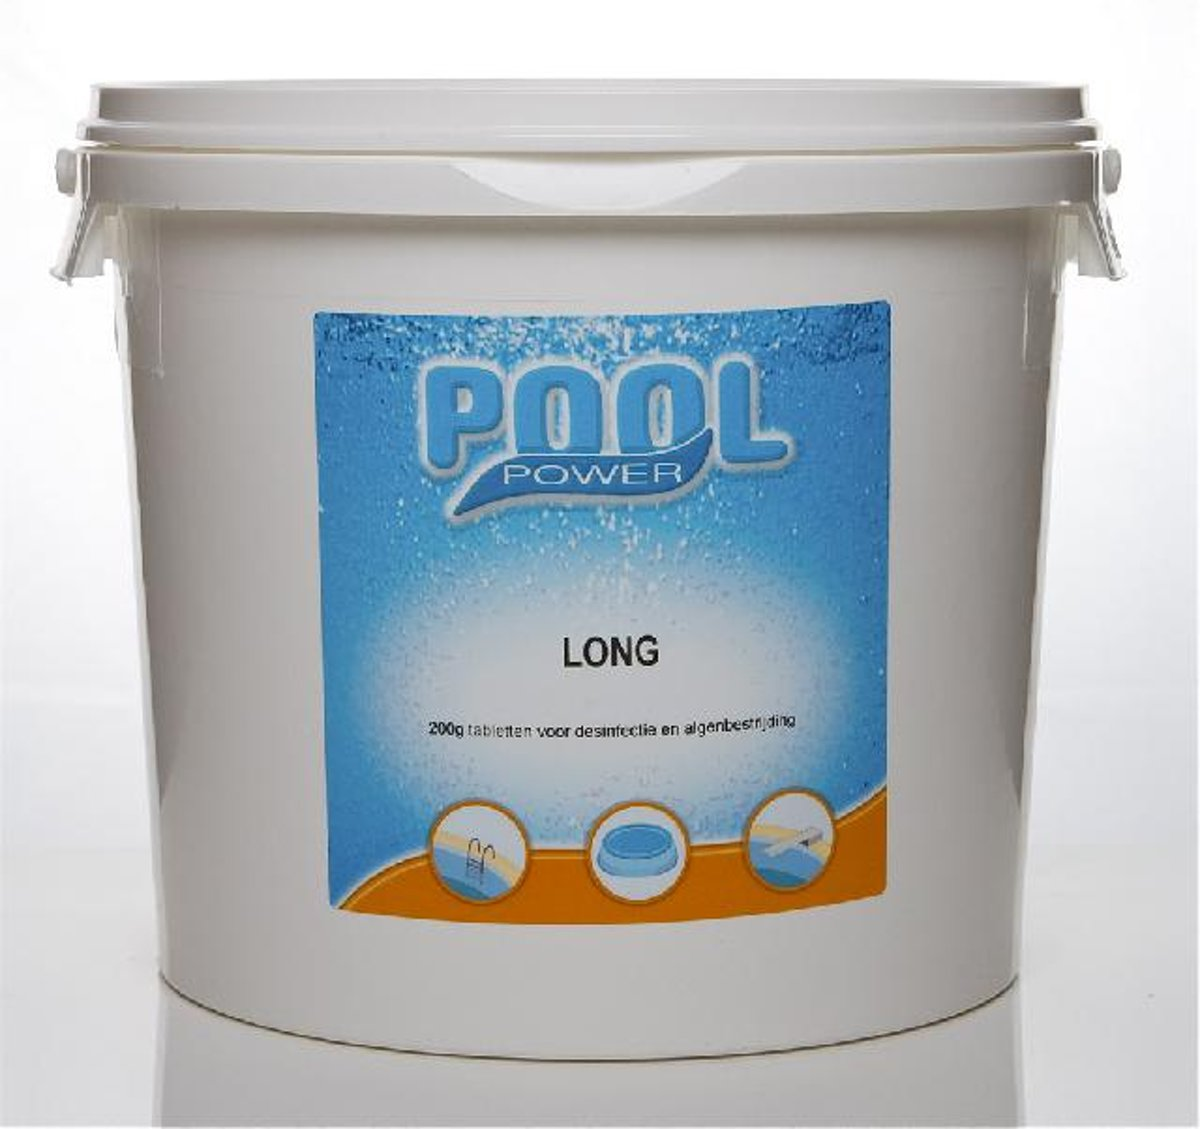 Pool Power long 200 gr. 10 kg